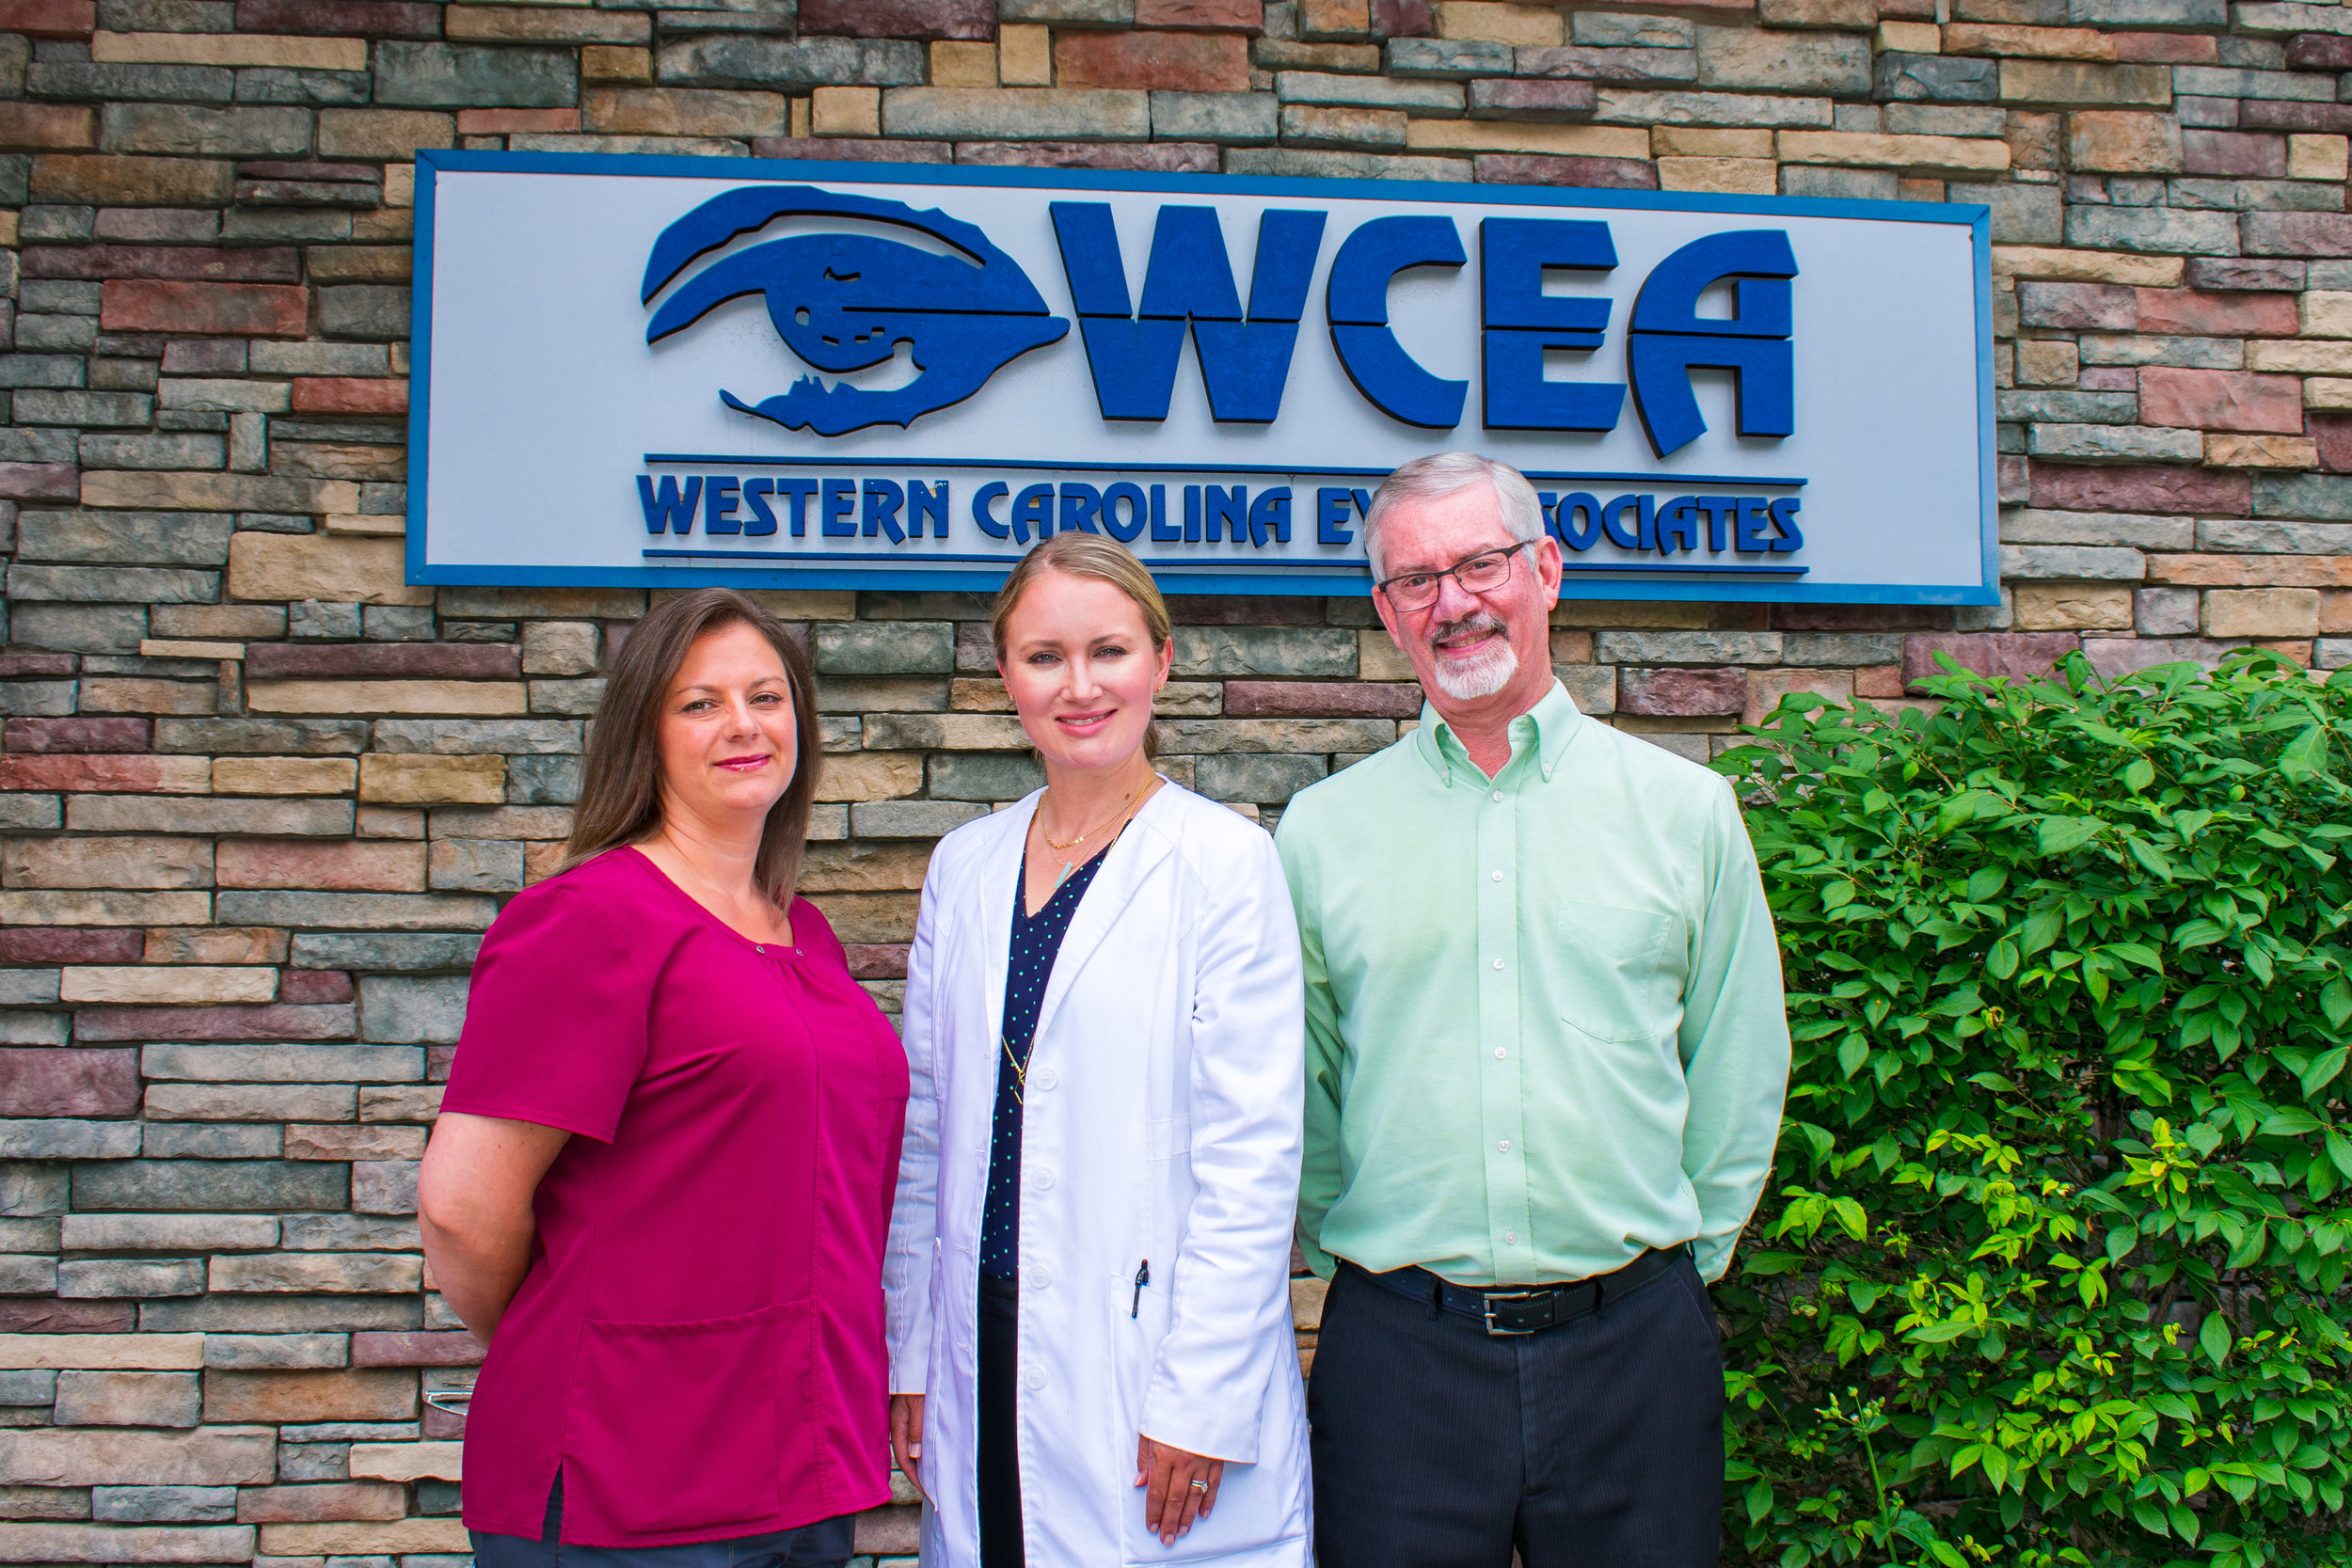 From left to right, Chantel Pelletier, Dr. Sara Creekmore and Tad Steinke. Just a few of the many friendly faces you'll see at Western Carolina Eye Associates in Banner Elk.